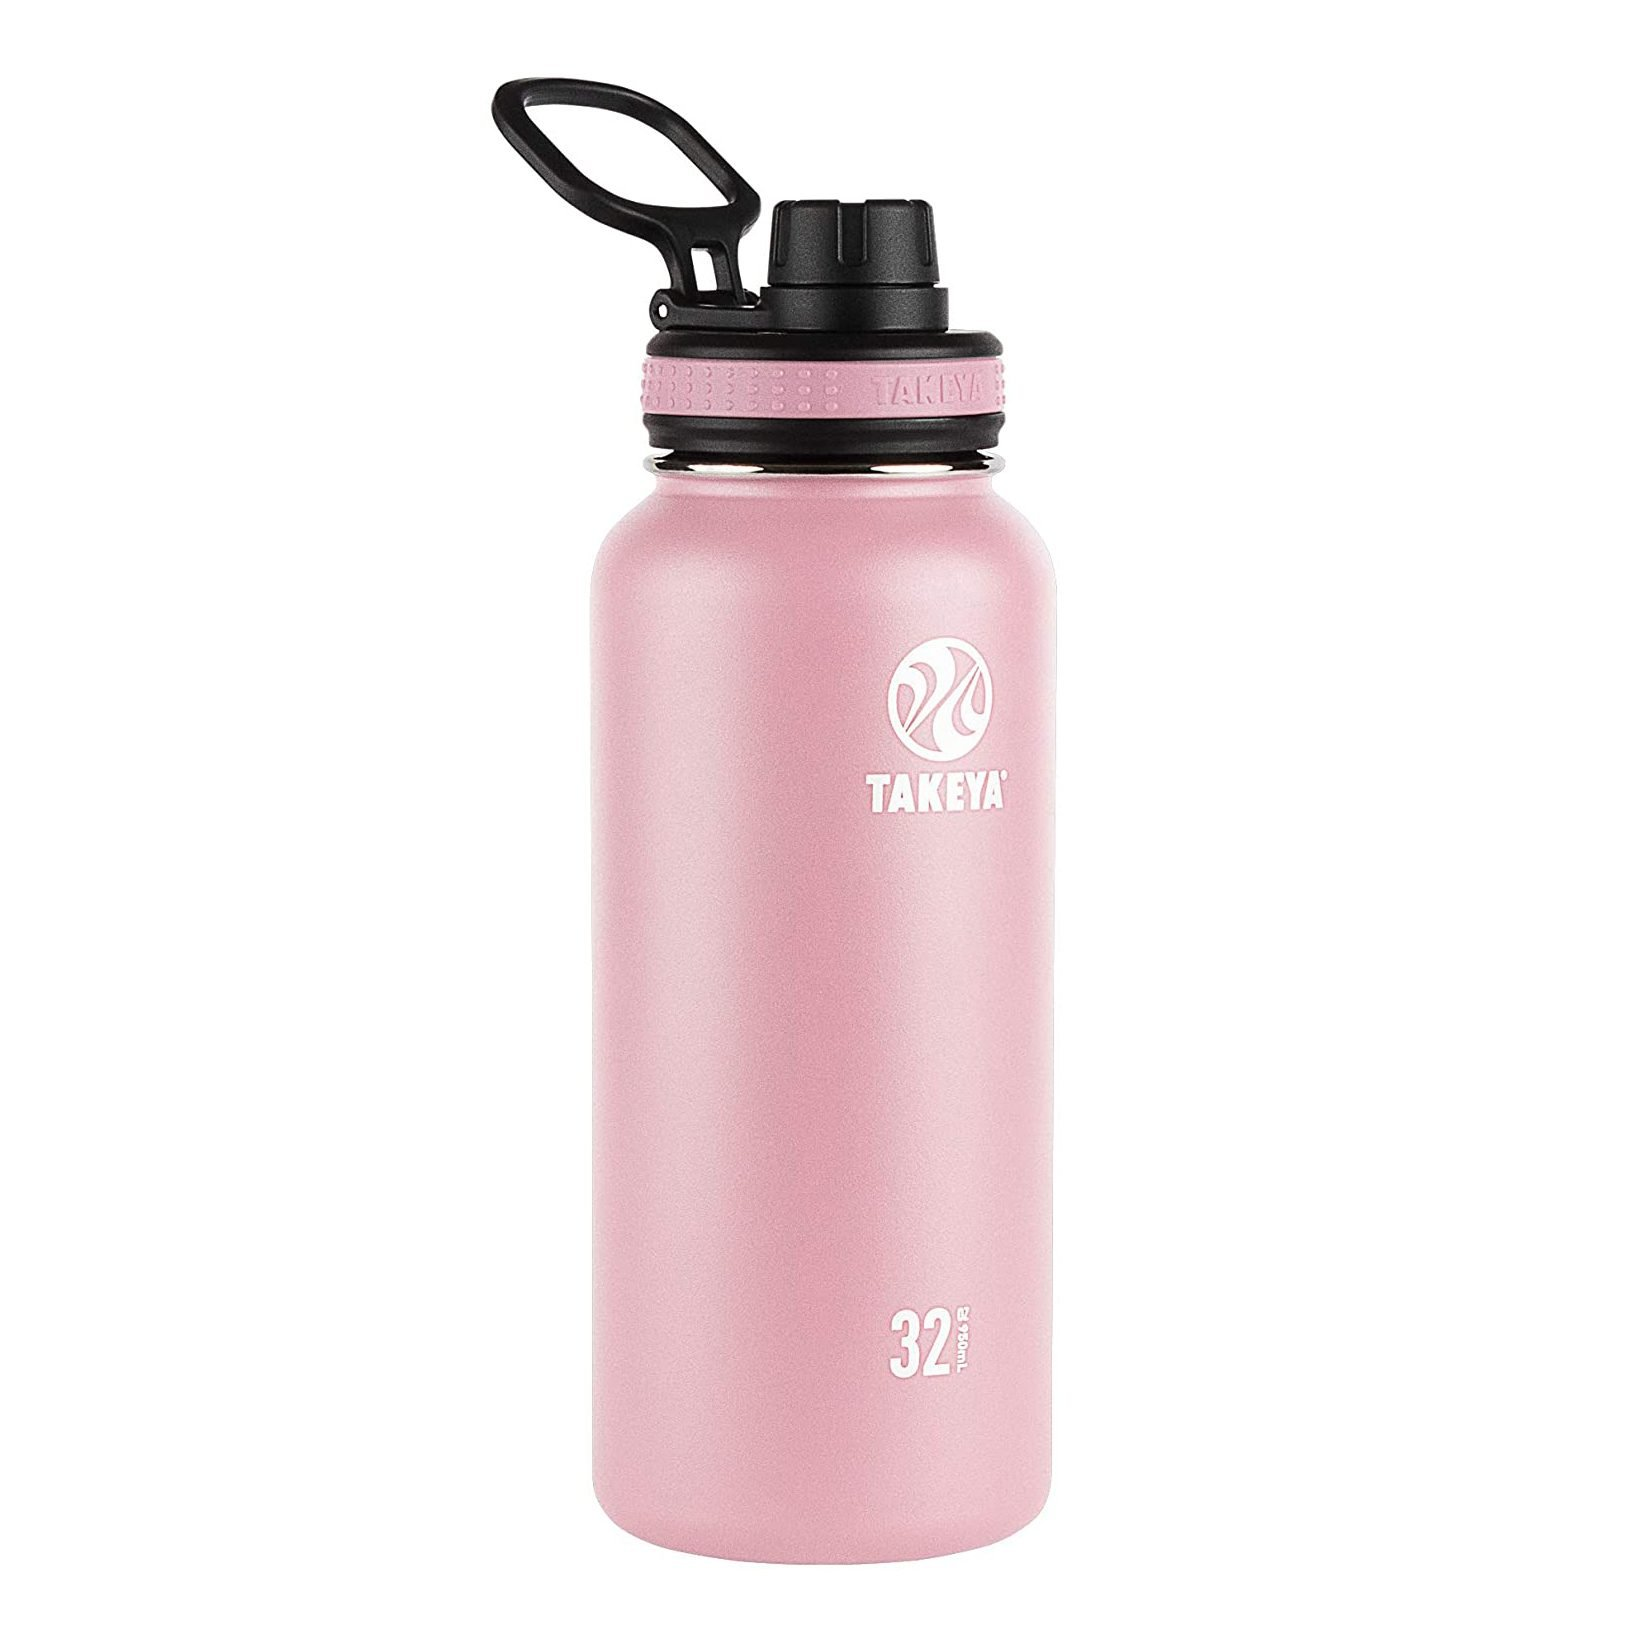 Takeya Insulated Stainless Steel Water Bottle